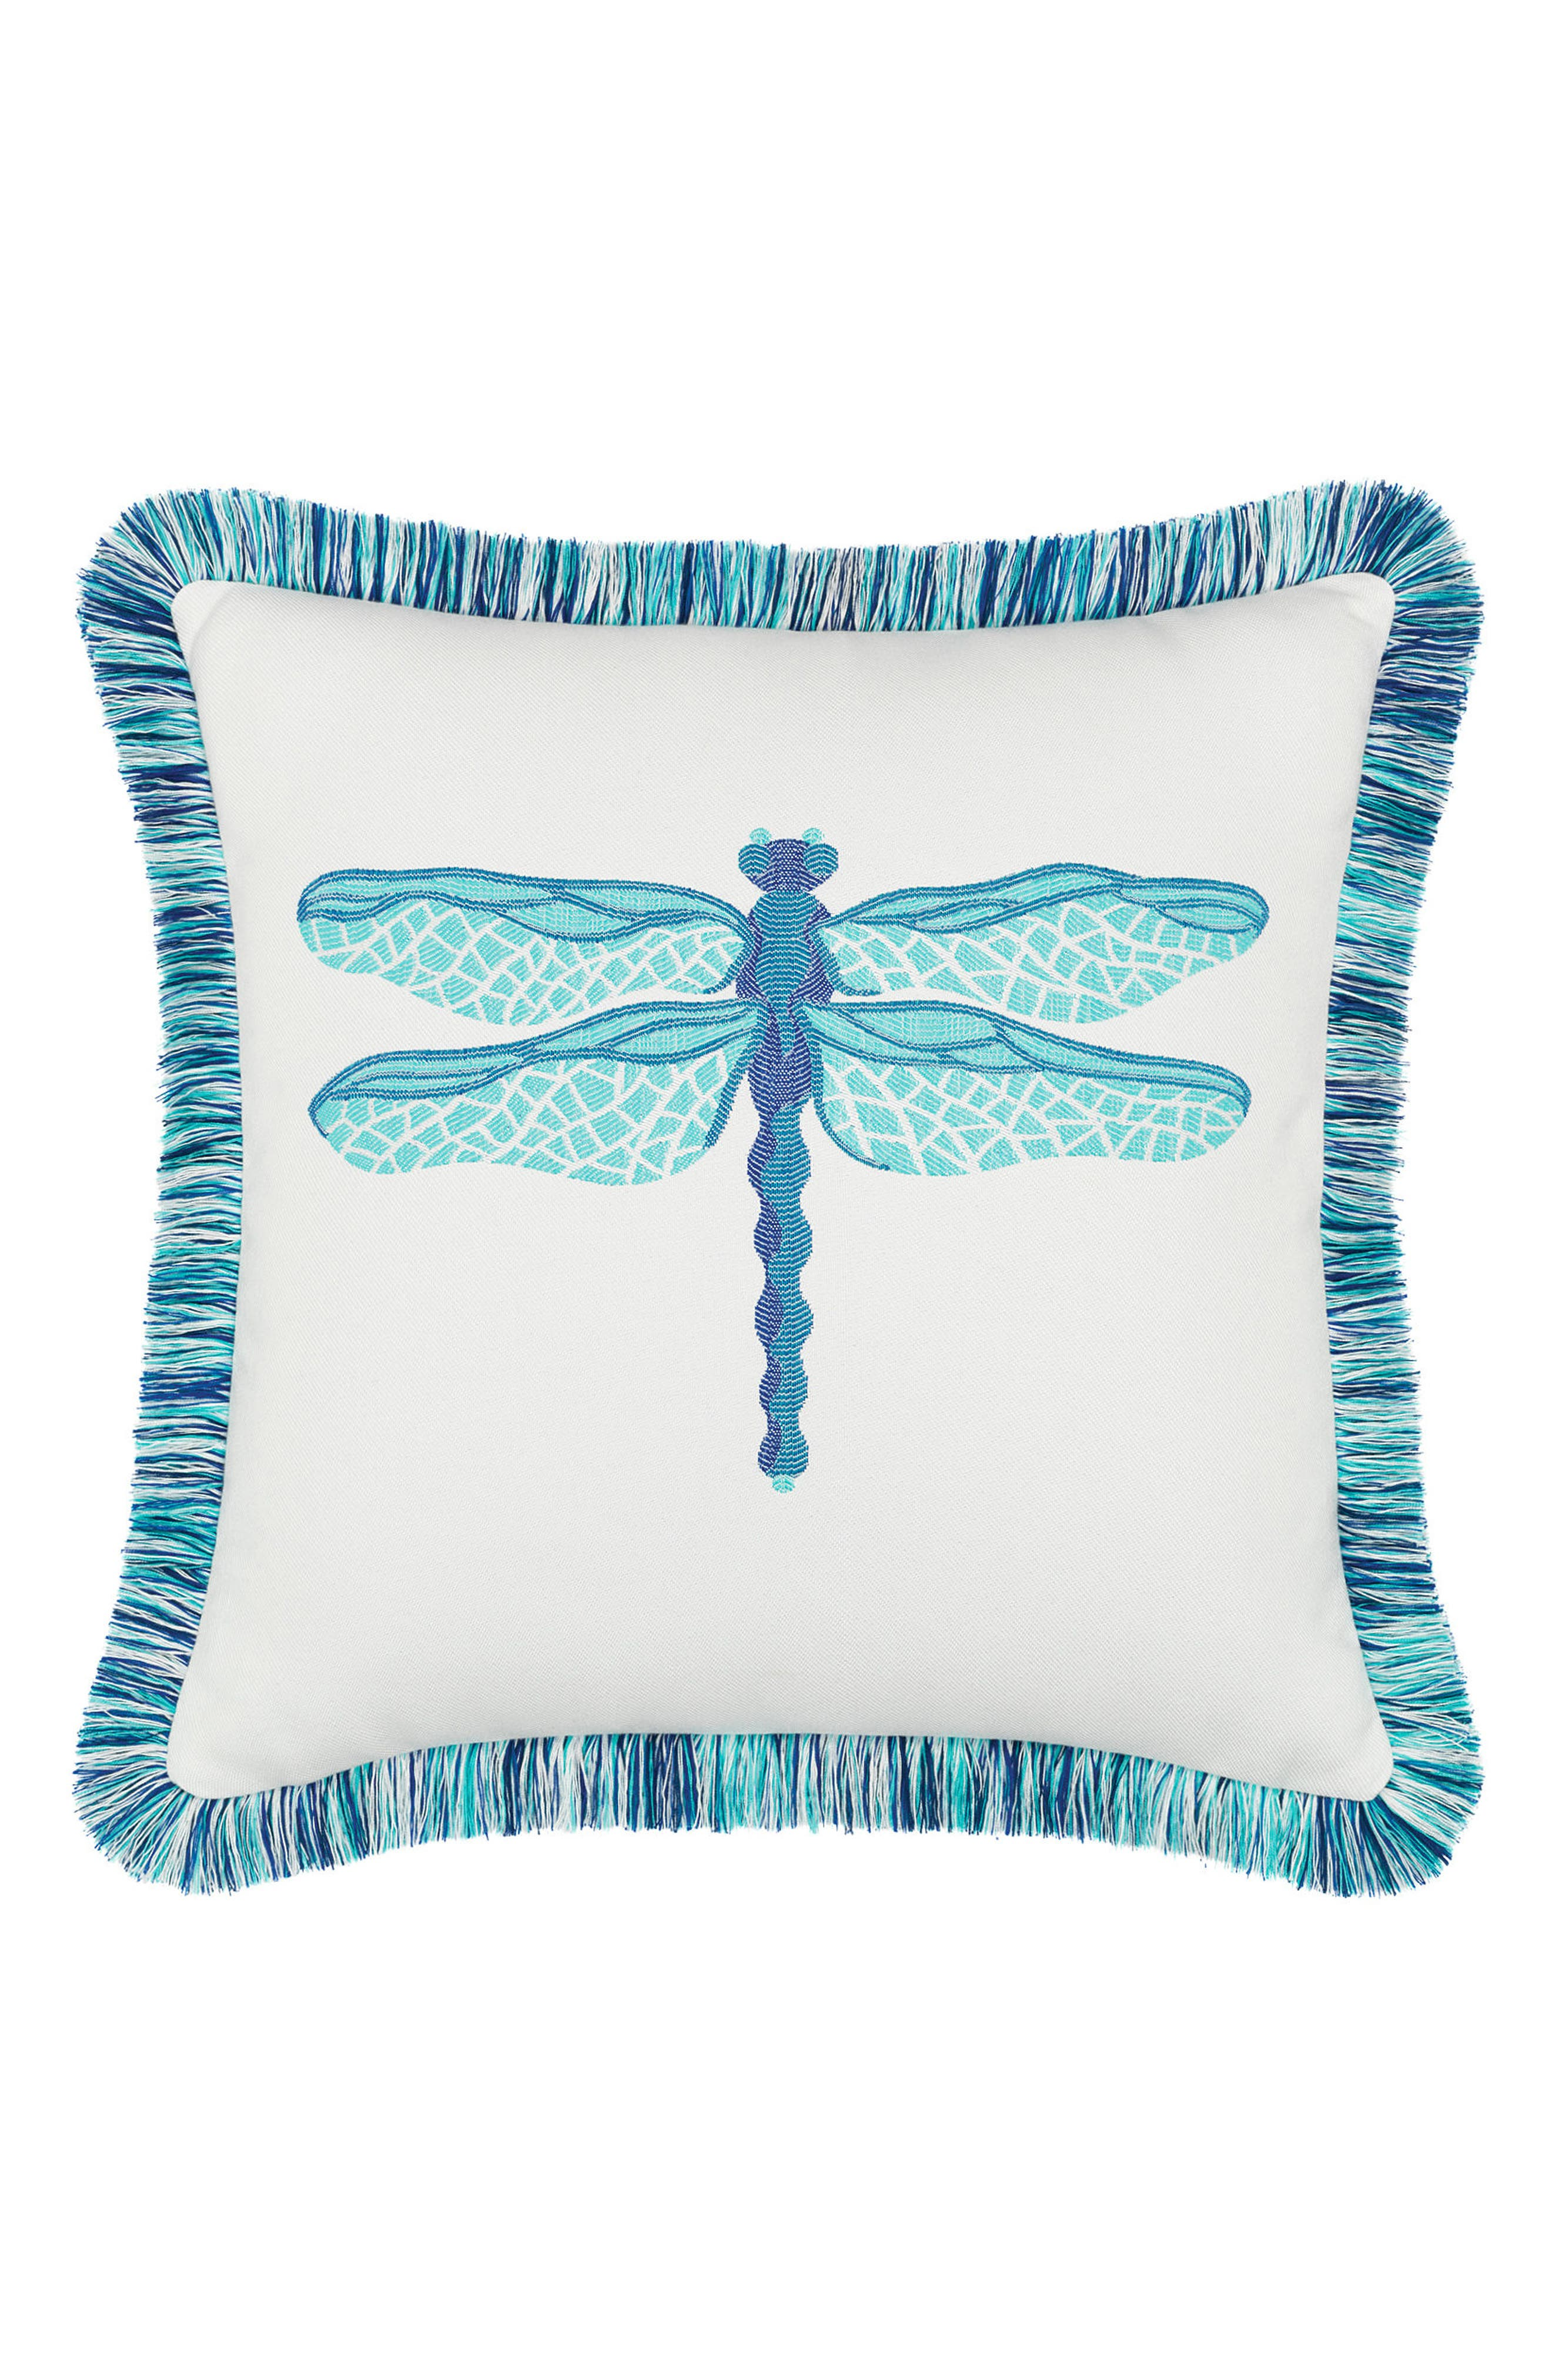 Main Image - Elaine Smith Dragonfly Indoor/Outdoor Accent Pillow